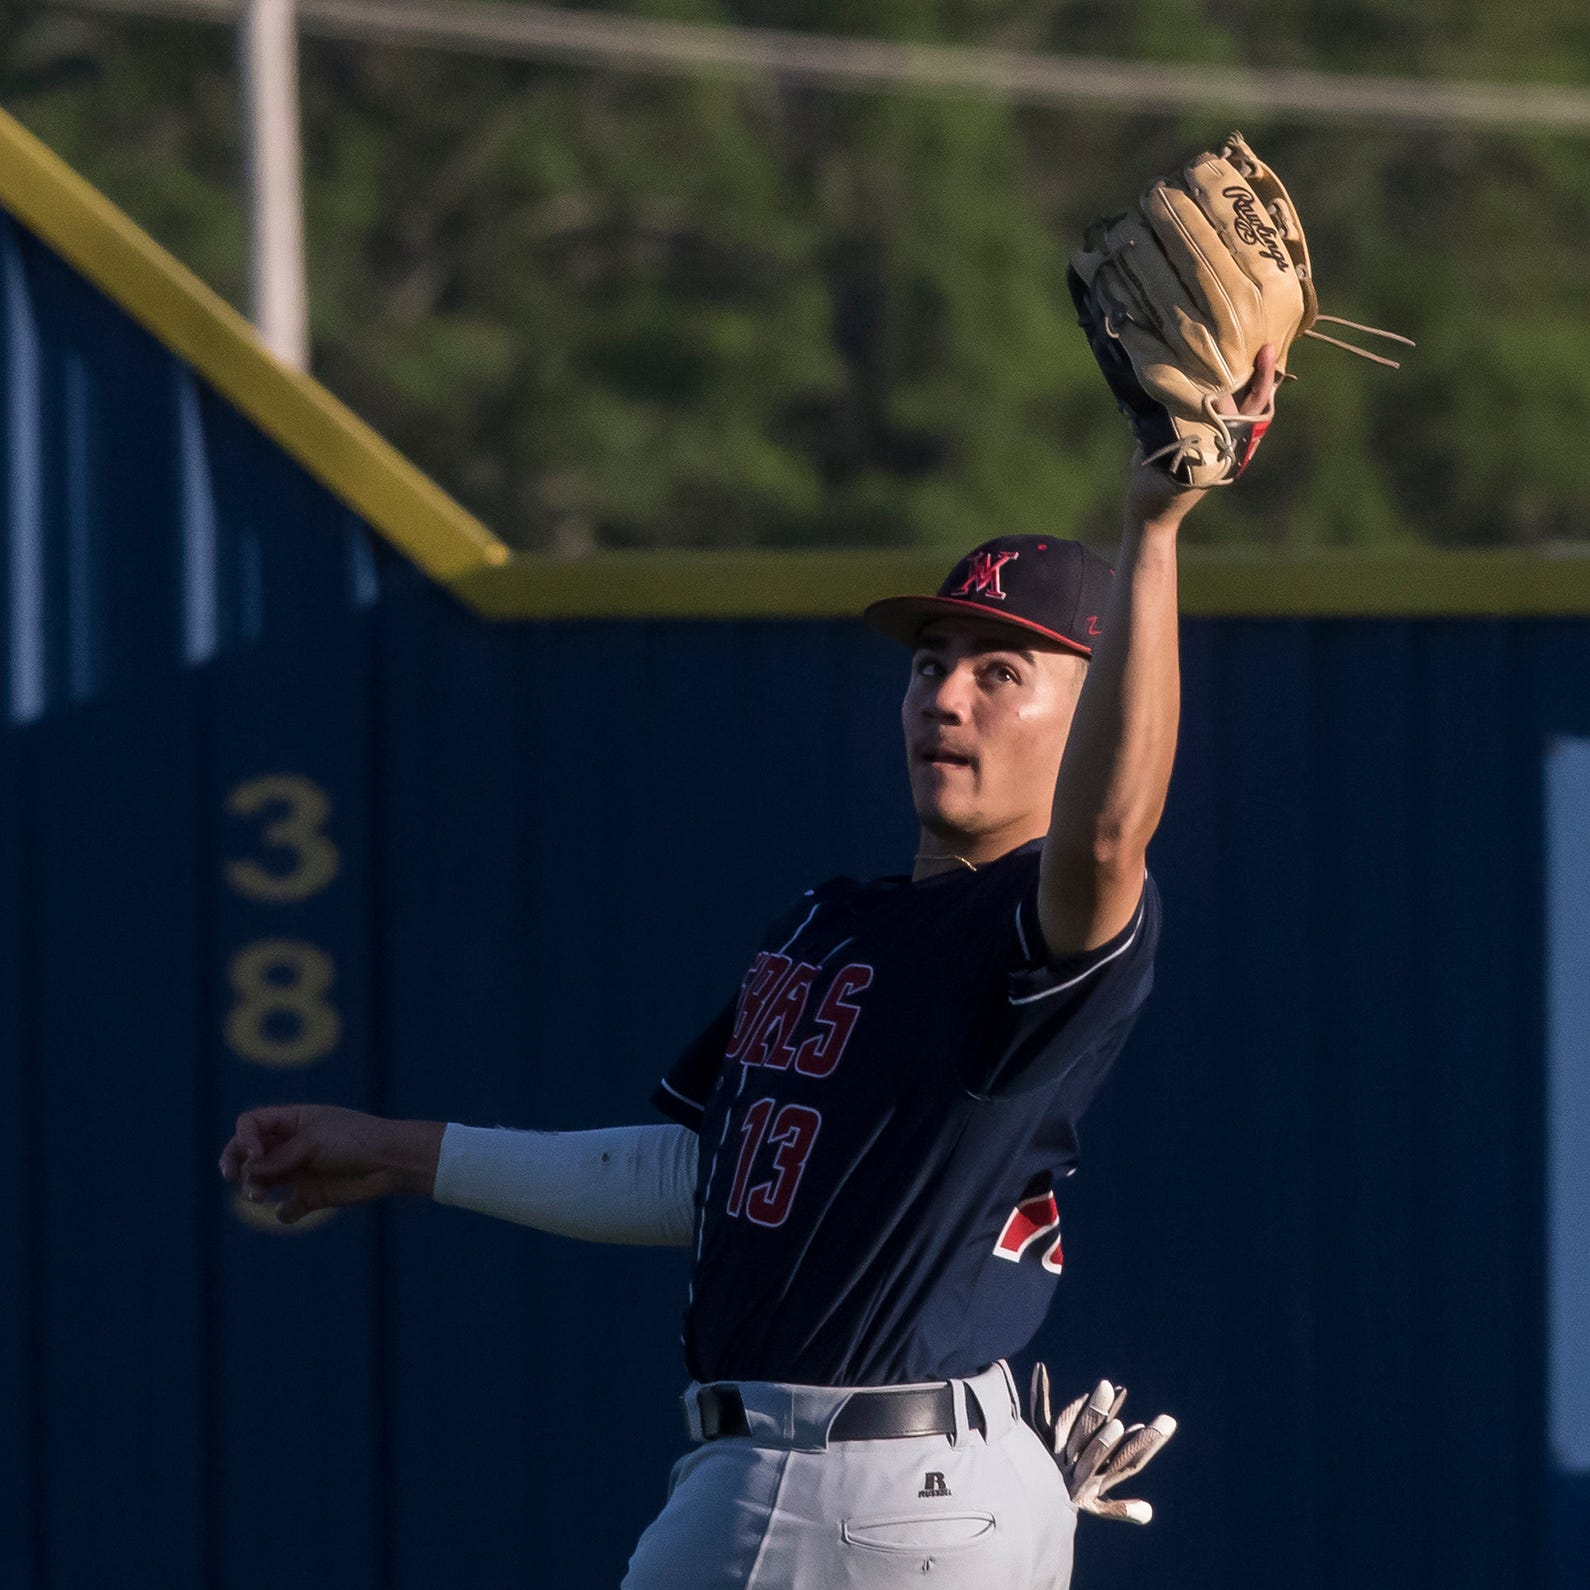 West Monroe's Cayden Pierce (13) makes a catch for the out in right field during the game in Sterlington, La. on April 9. Sterlington would go on to win the game 7-3.